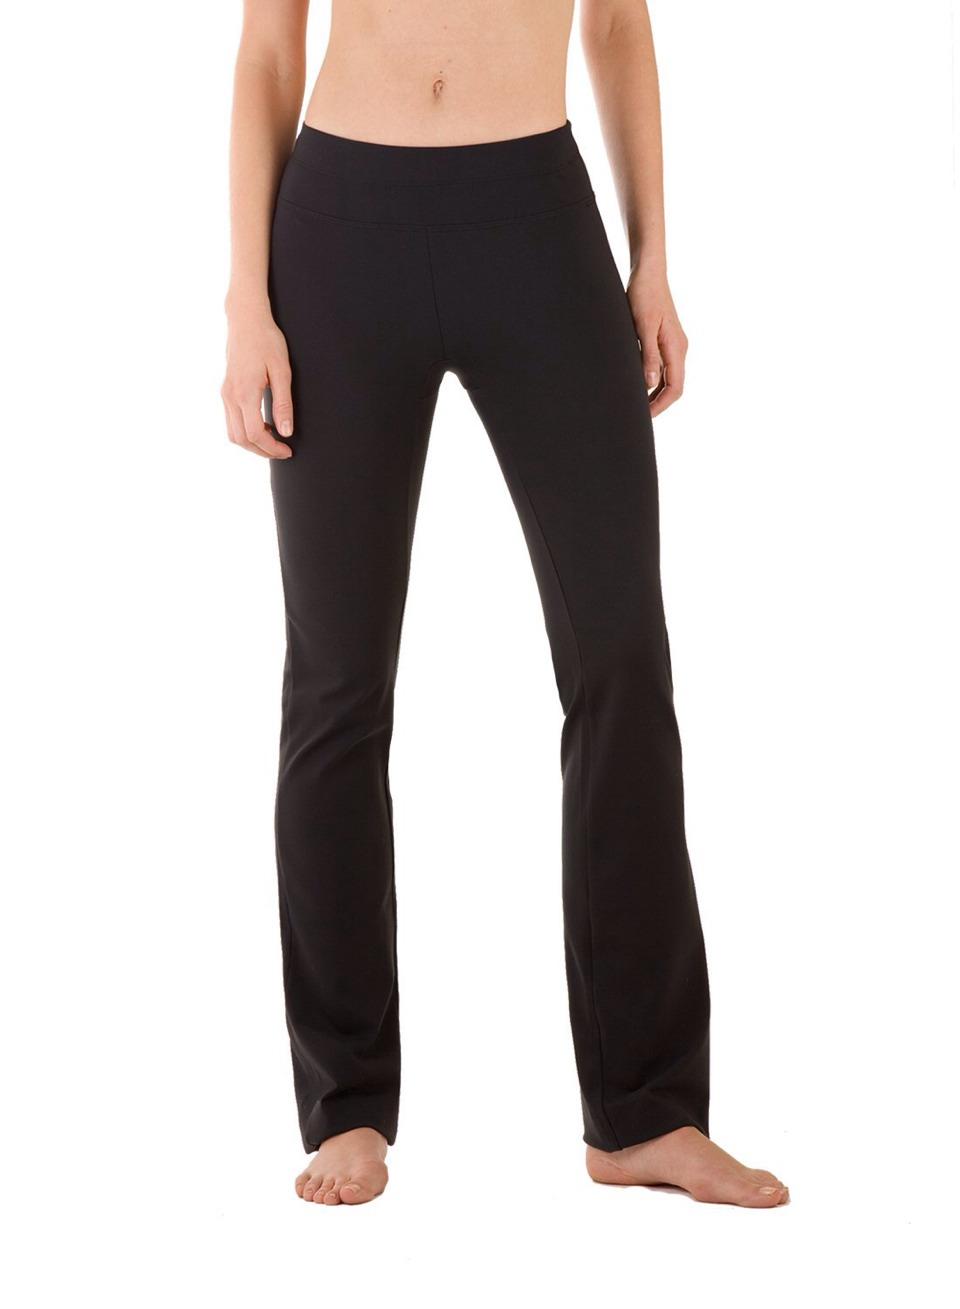 You can change the length of the yoga pants any length would look good with this!